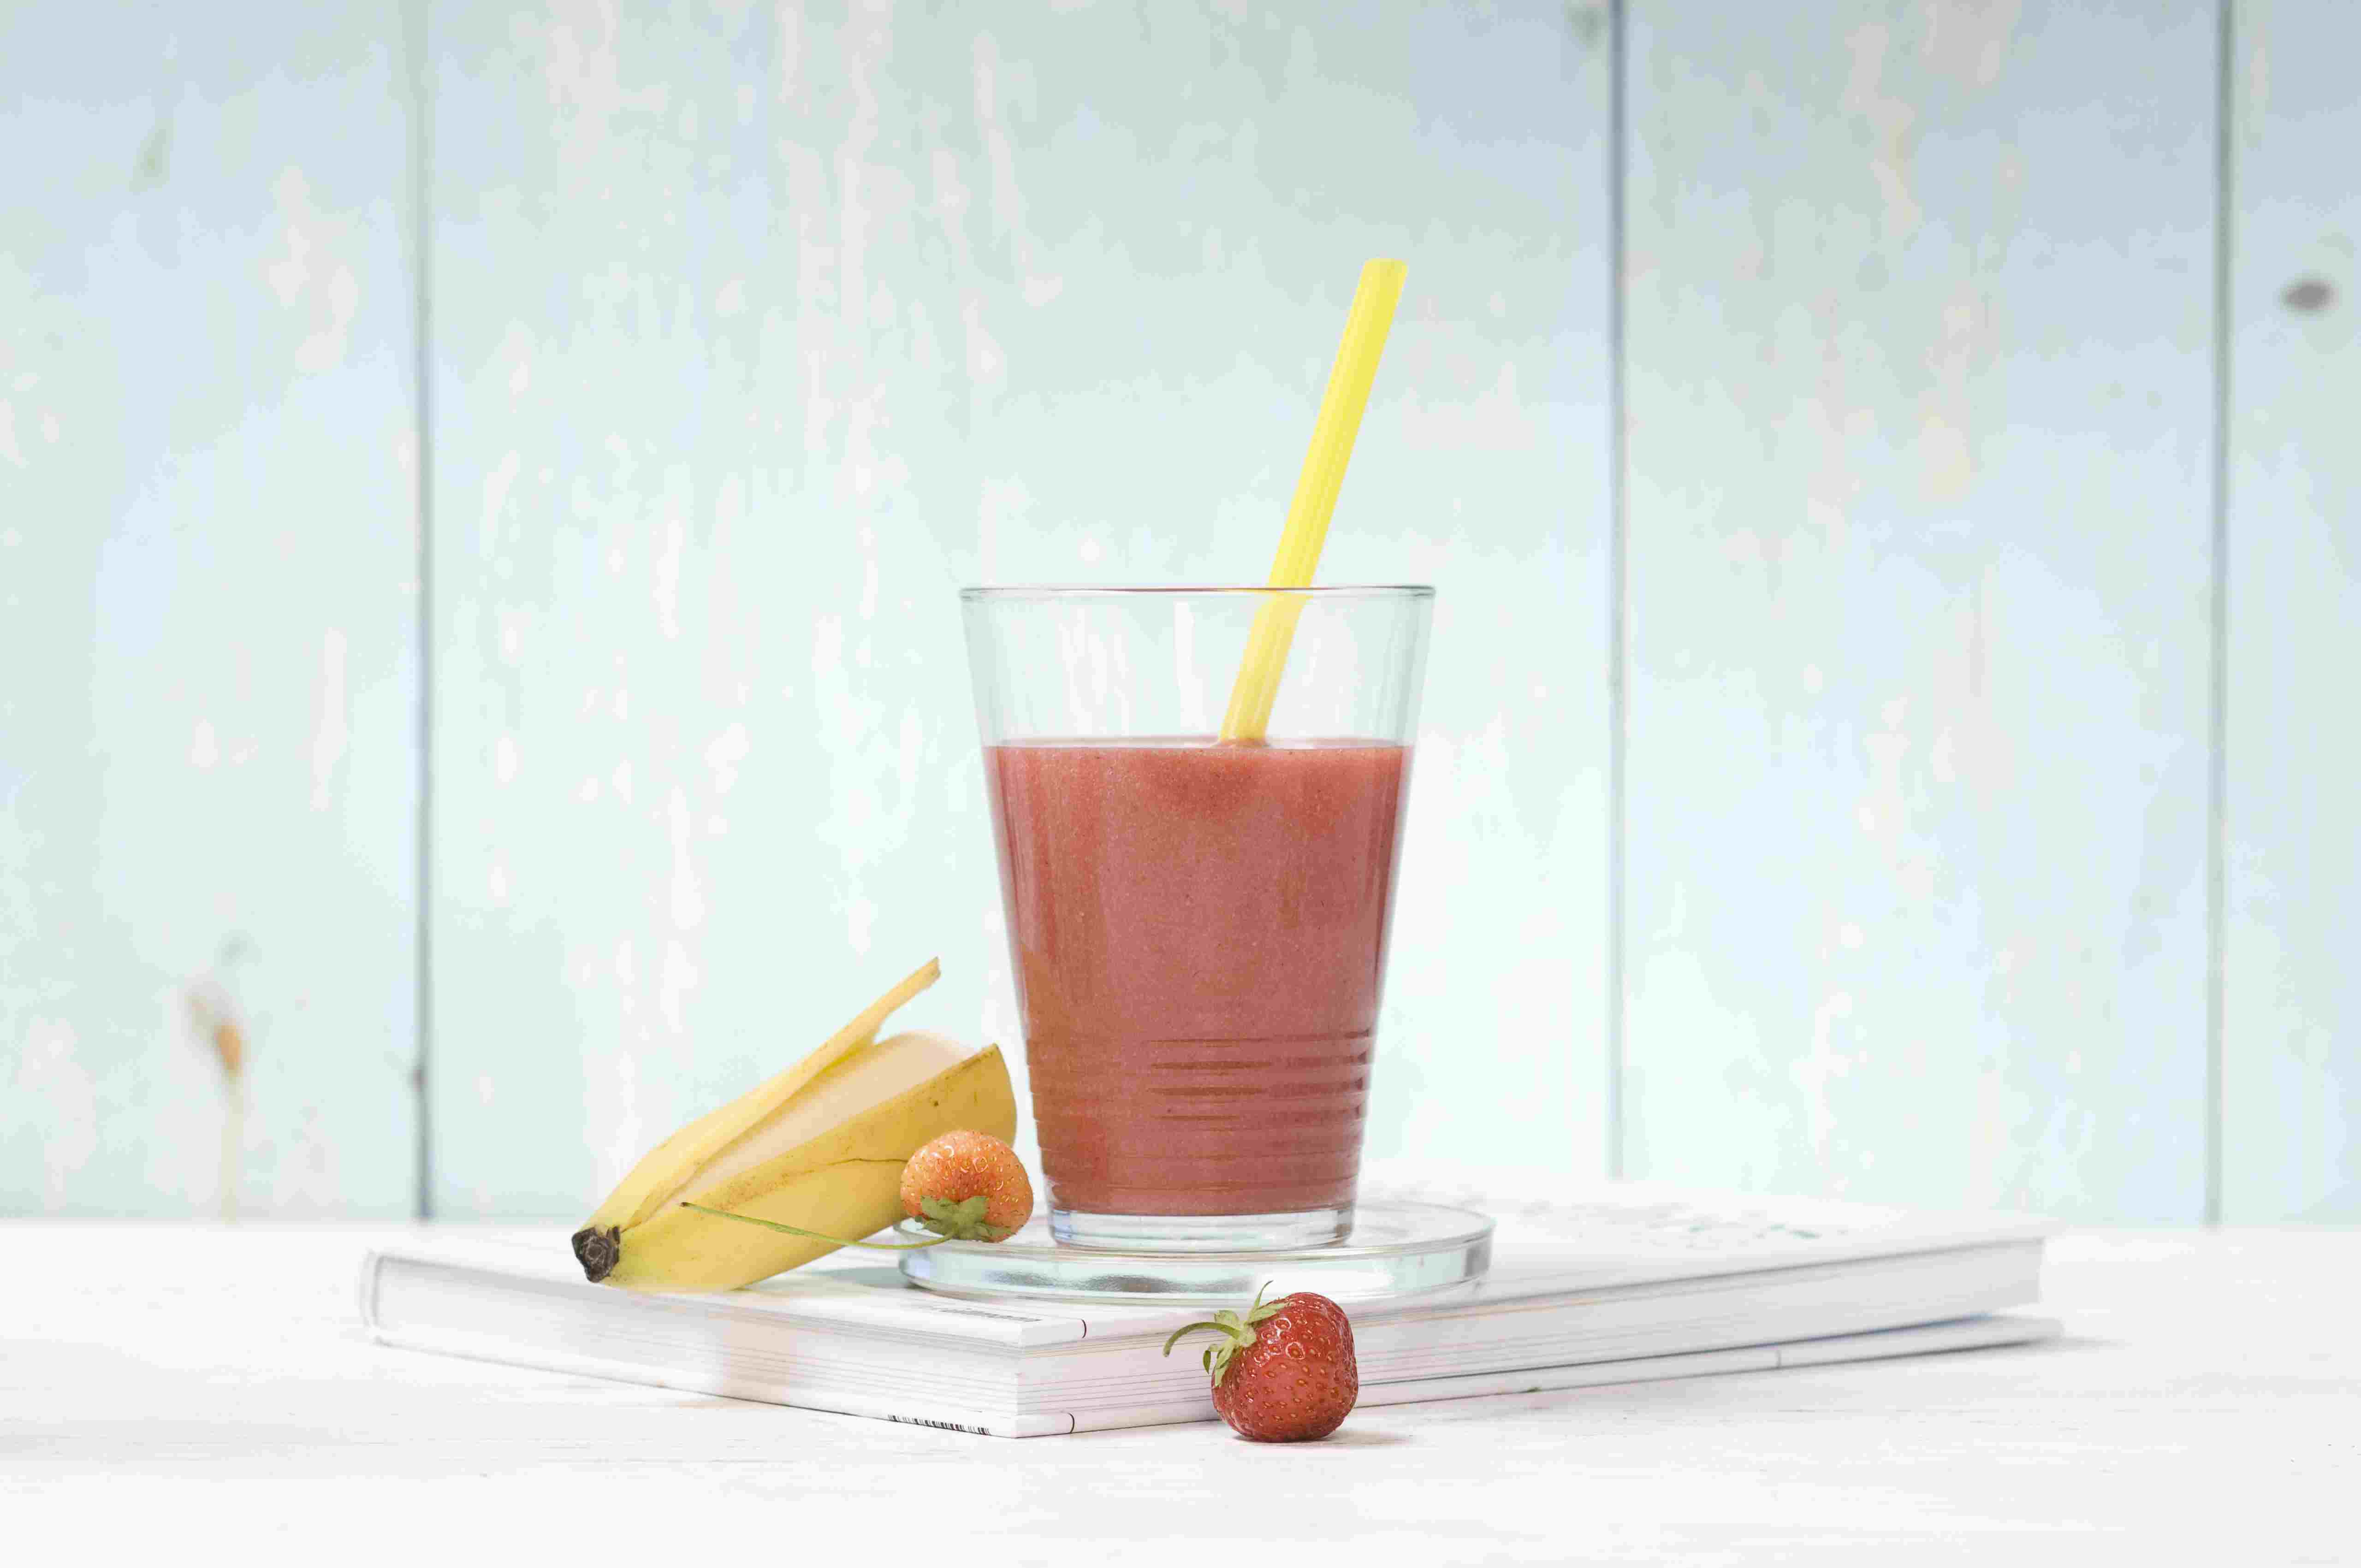 Strawberry banana smoothie in glass with drinking straw